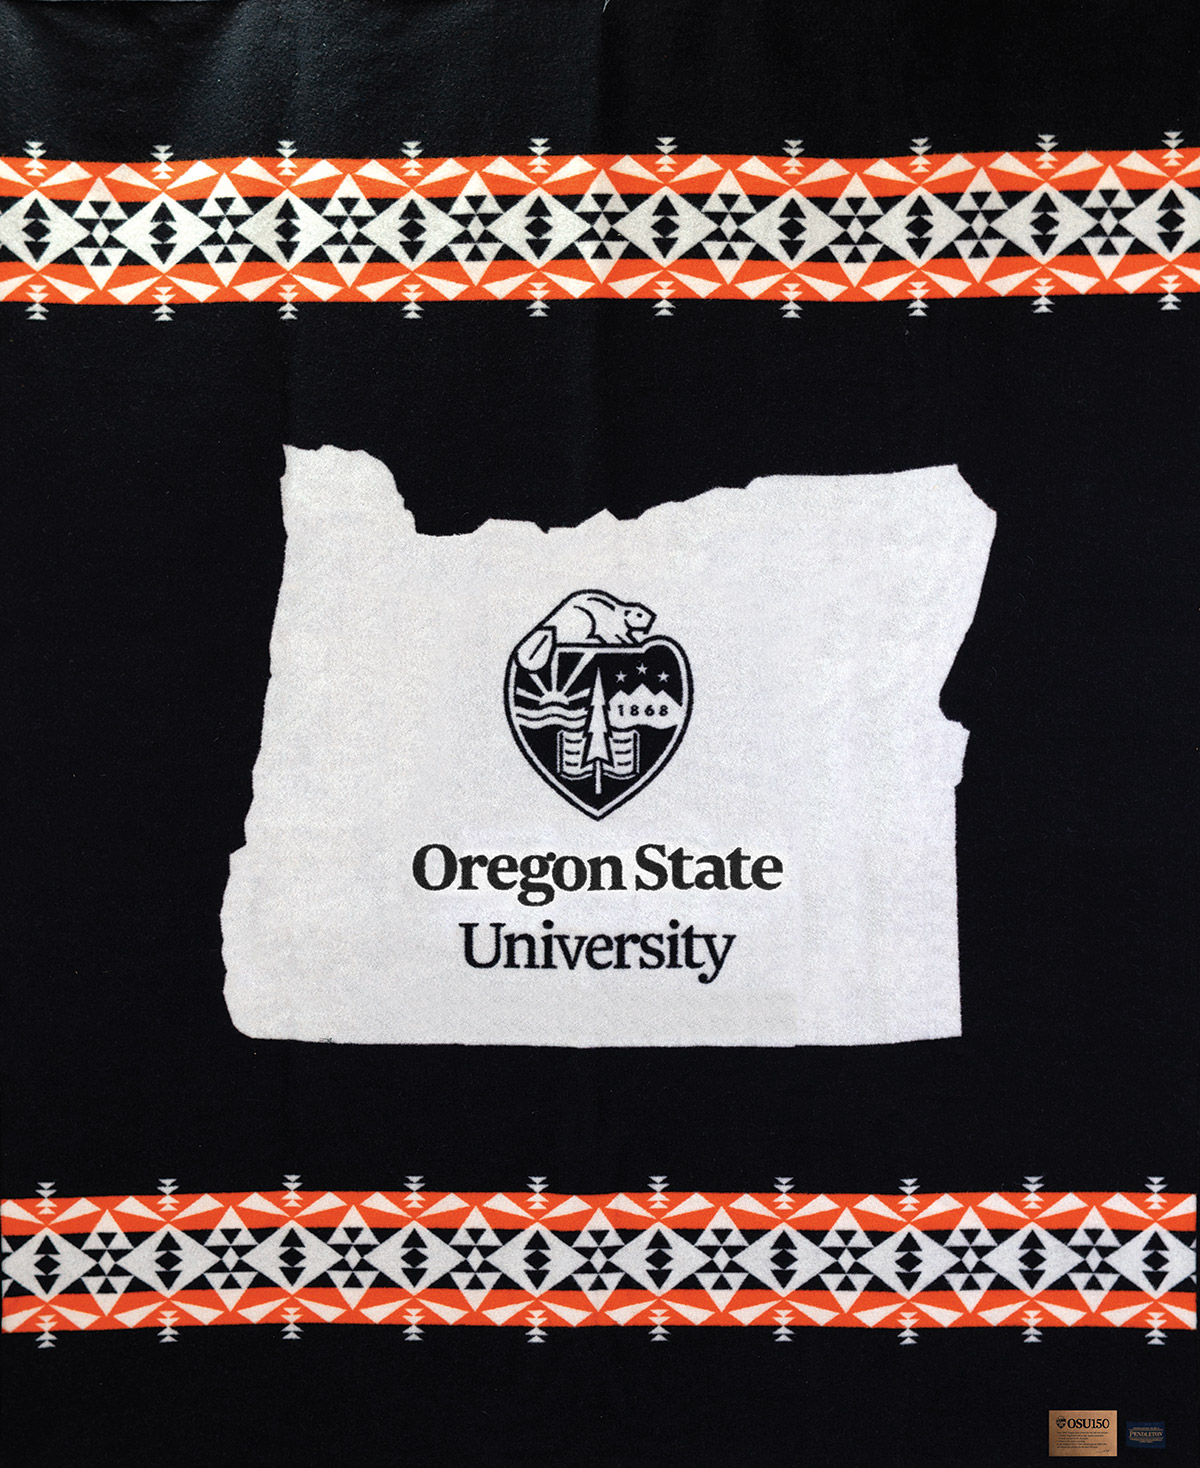 osu150 commemorative blanket